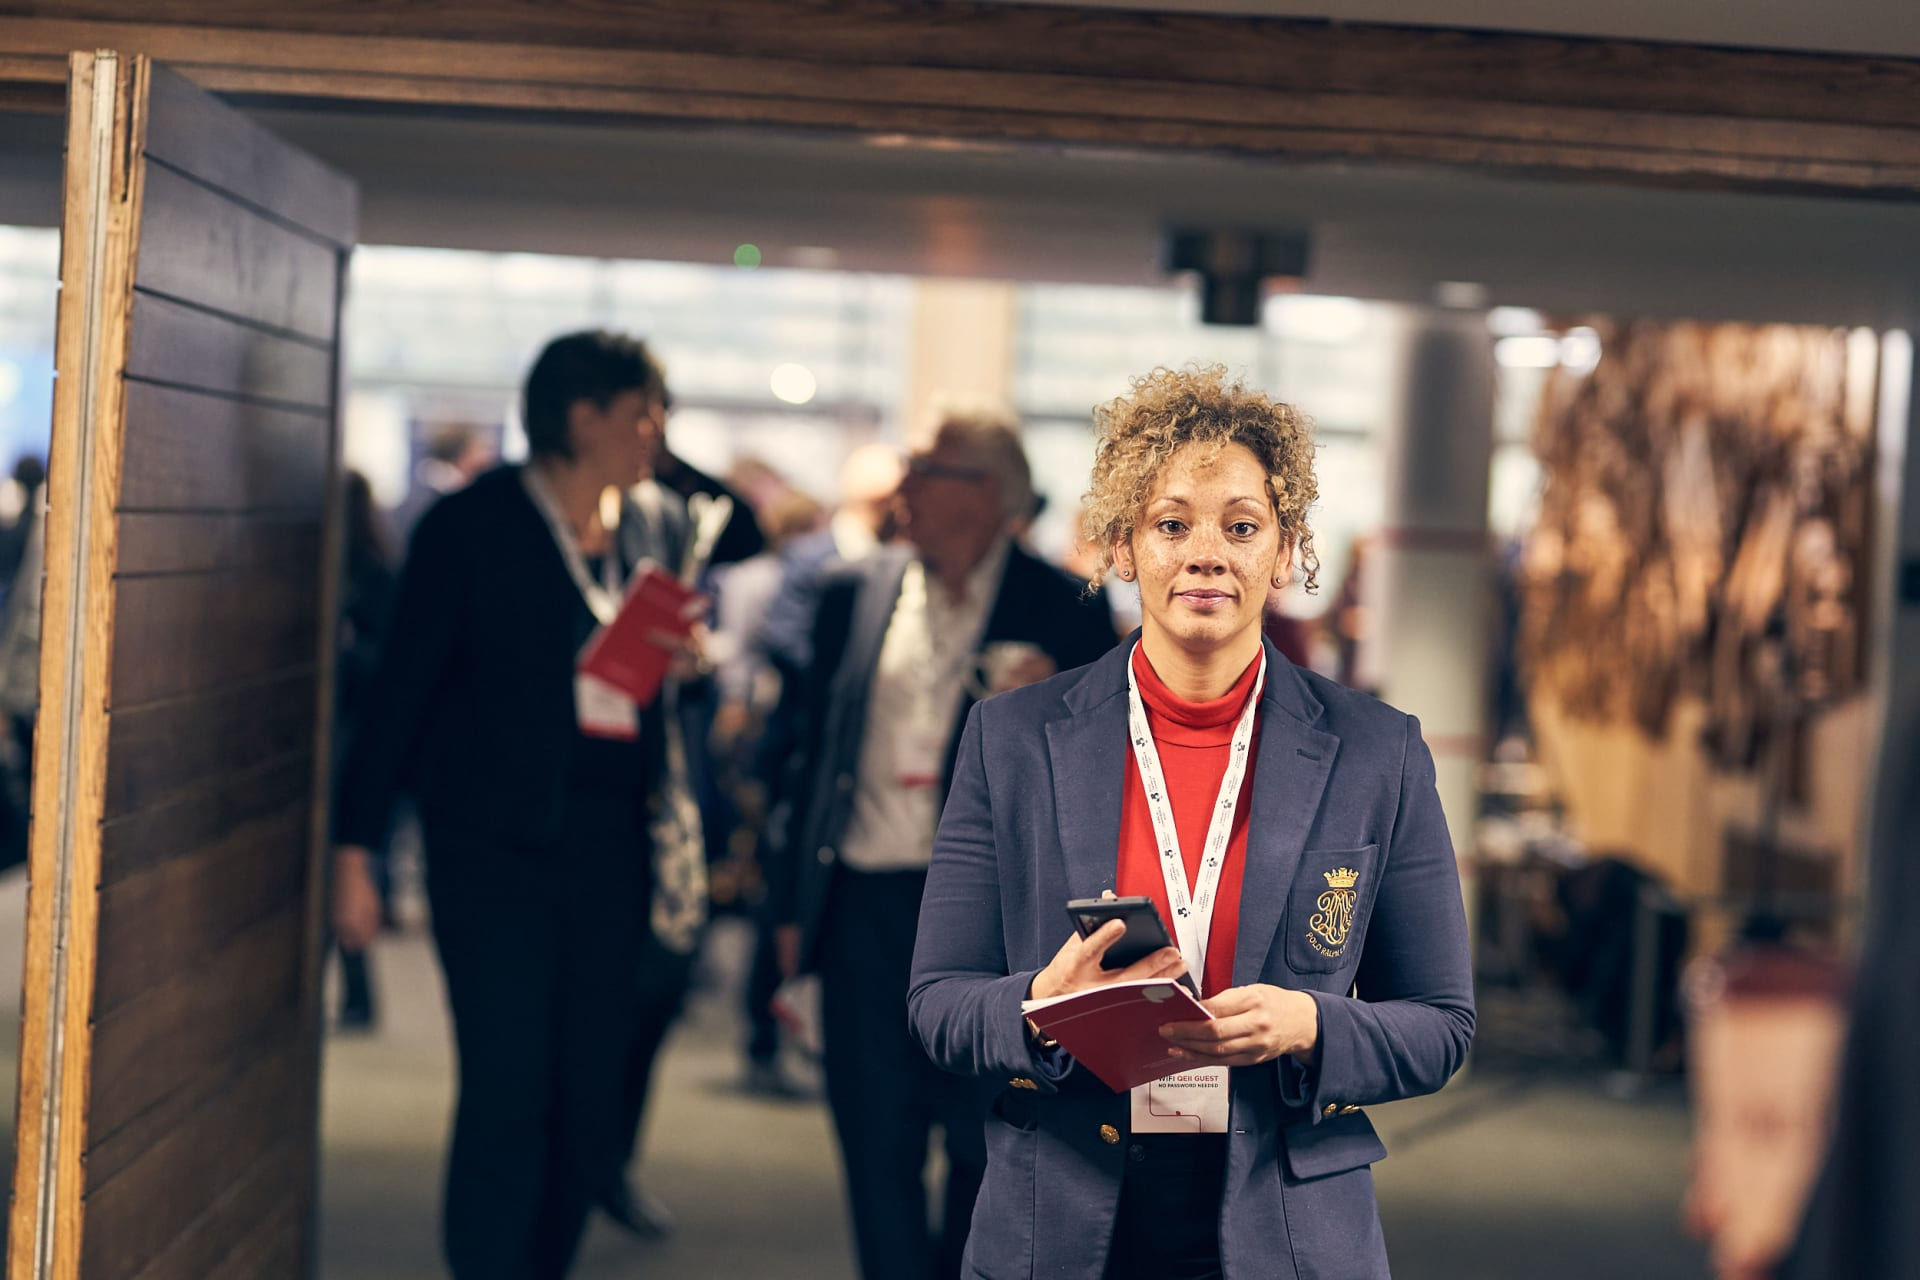 Photograph taken at the QEII Centre, London in March 2020 during the British Chambers of Commerce Annual Conference